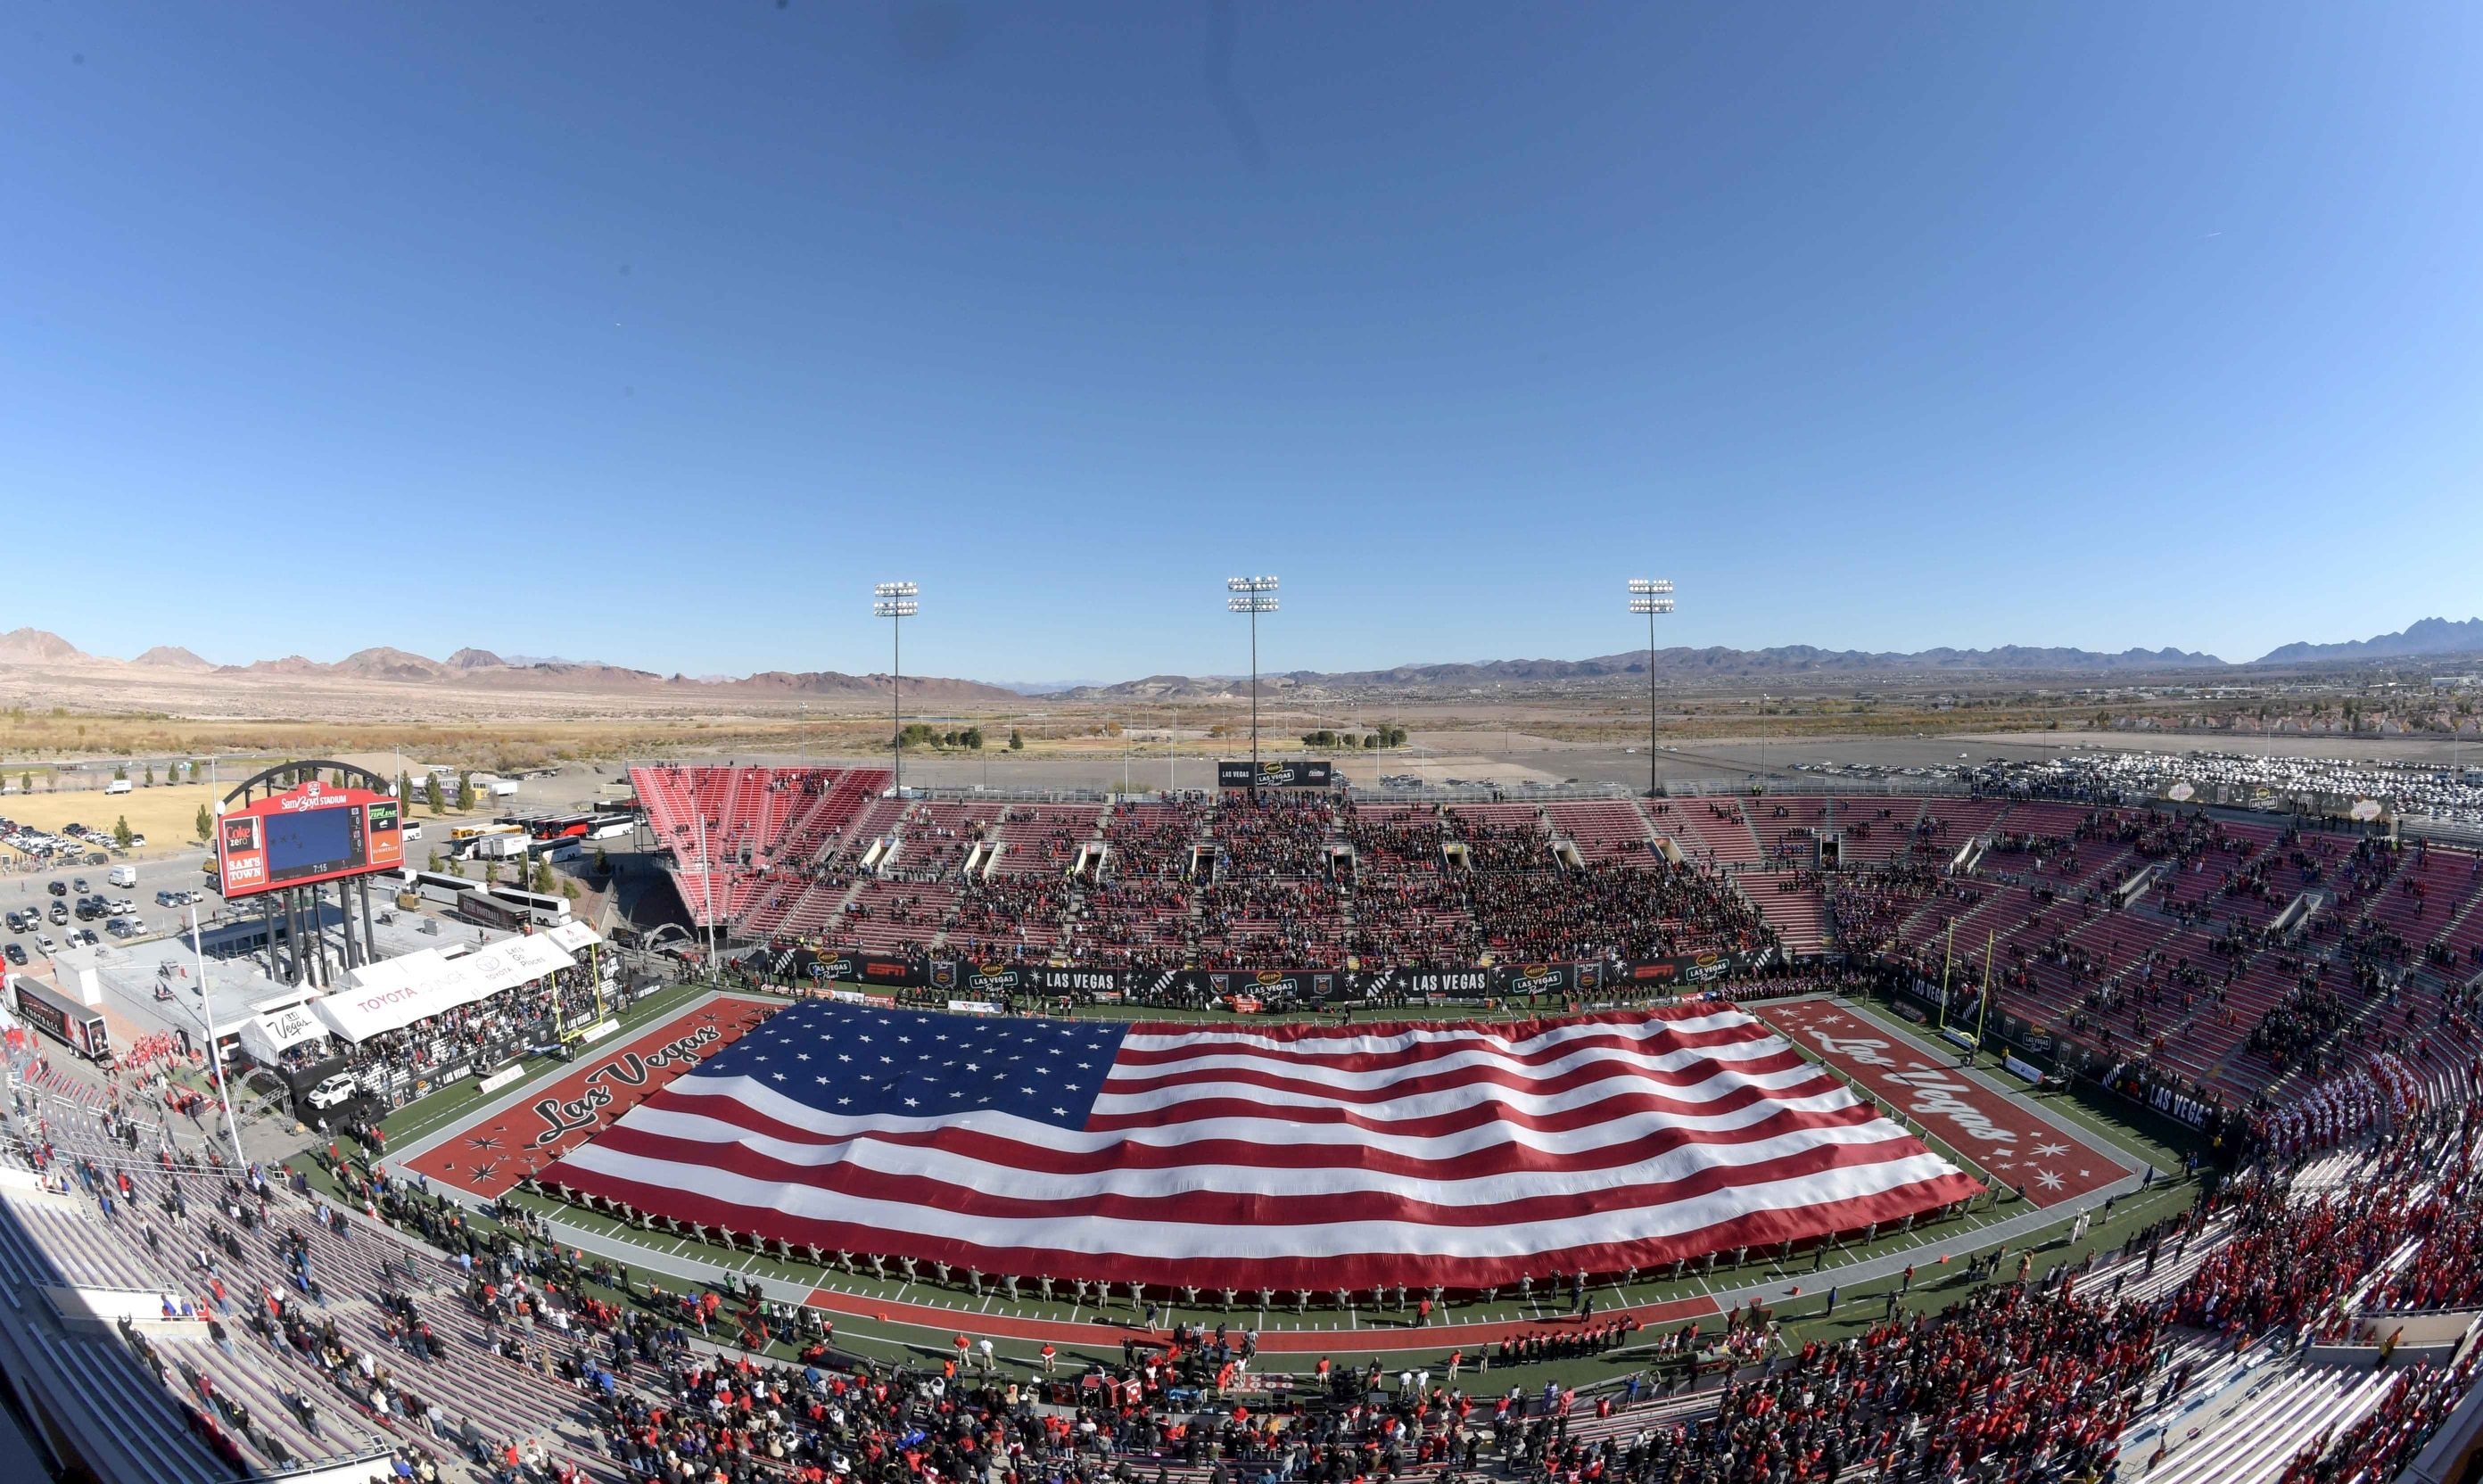 Dec 17, 2016; Las Vegas, NV, USA; A general view of a United States flag displayed at Sam Boyd Stadium during the national anthem prior to the 25th Las Vegas Bowl between the San Diego State Aztecs and the Houston Cougars. Mandatory Credit: Kirby Lee-USA TODAY Sports